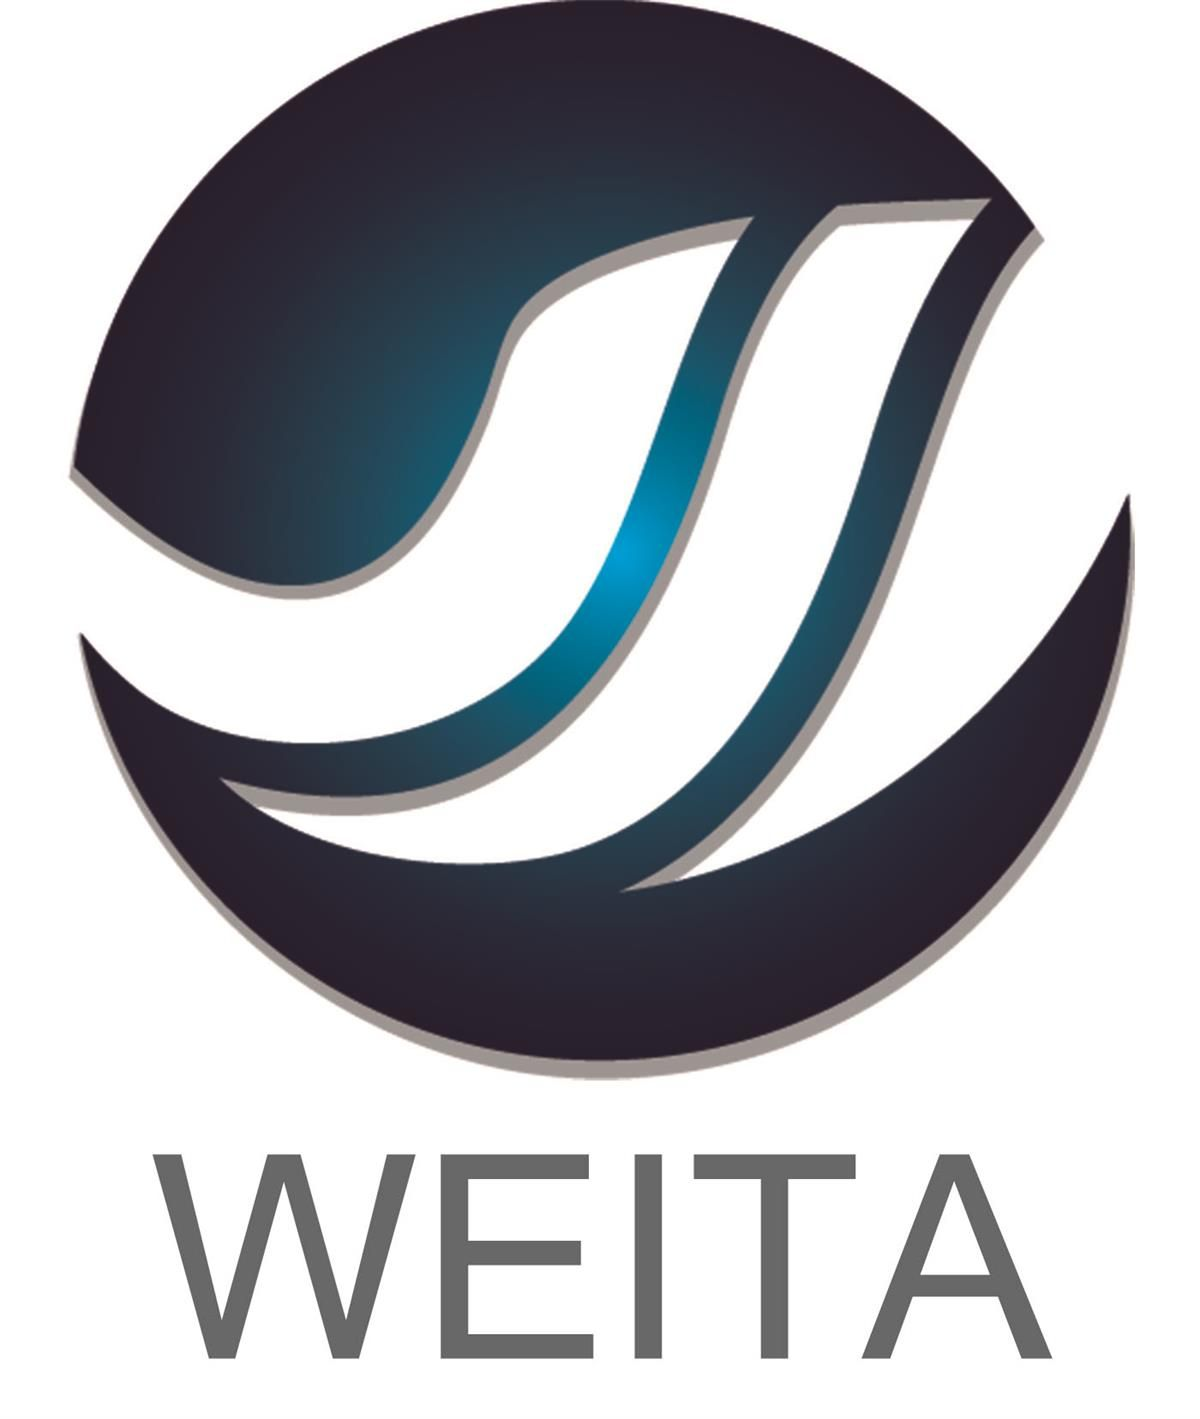 SHANGHAI WEITA INTERNATIONAL TRADING CO. LTD